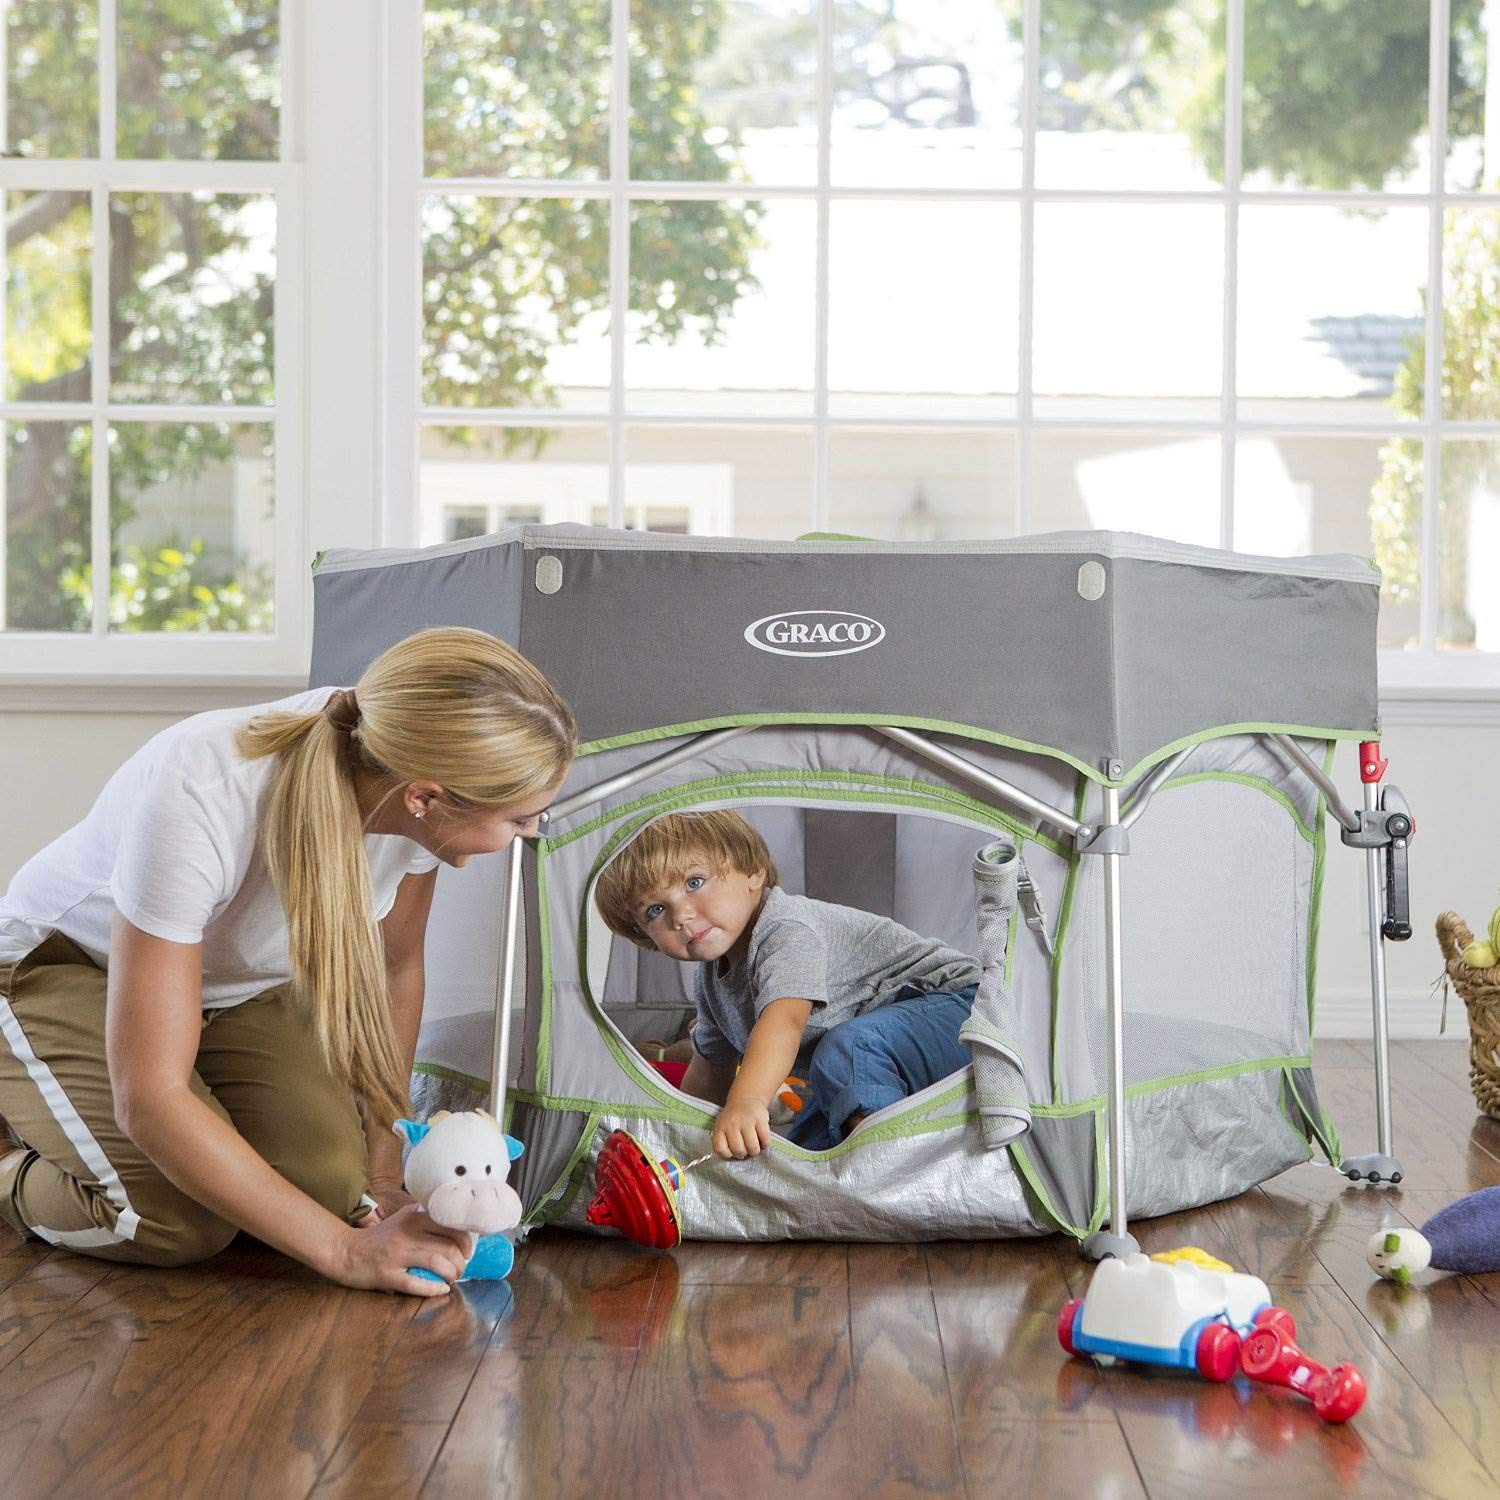 parent and child using playard